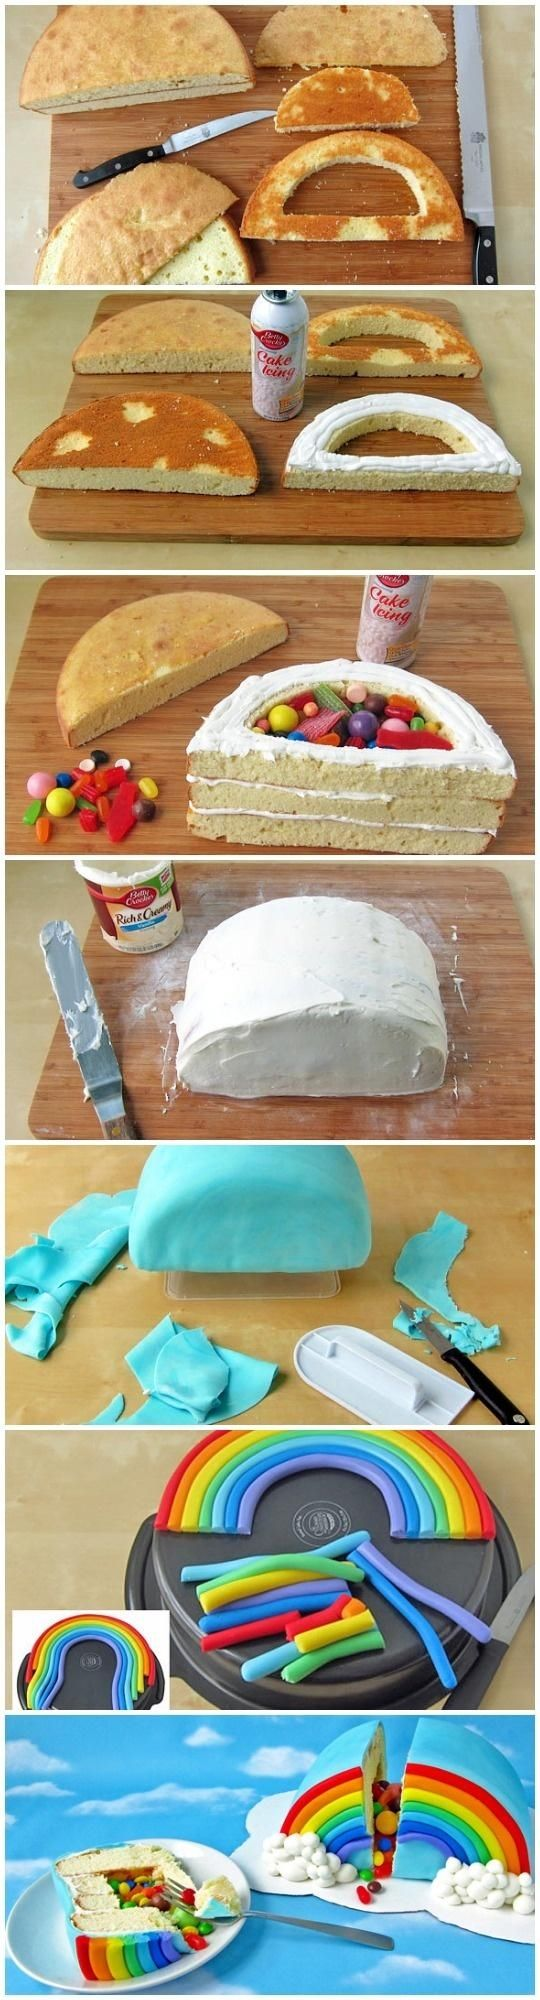 DIY Cake Pictures, Photos, and Images for Facebook, Tumblr, Pinterest, and Twitter: Amazement Cakes, Cakes Tutorials, Cakes Ideas, Rainbows Birthday, Rainbows Cakes, Rainbows Parties, Surprise Cakes, Pinata Cakes, Birthday Cakes